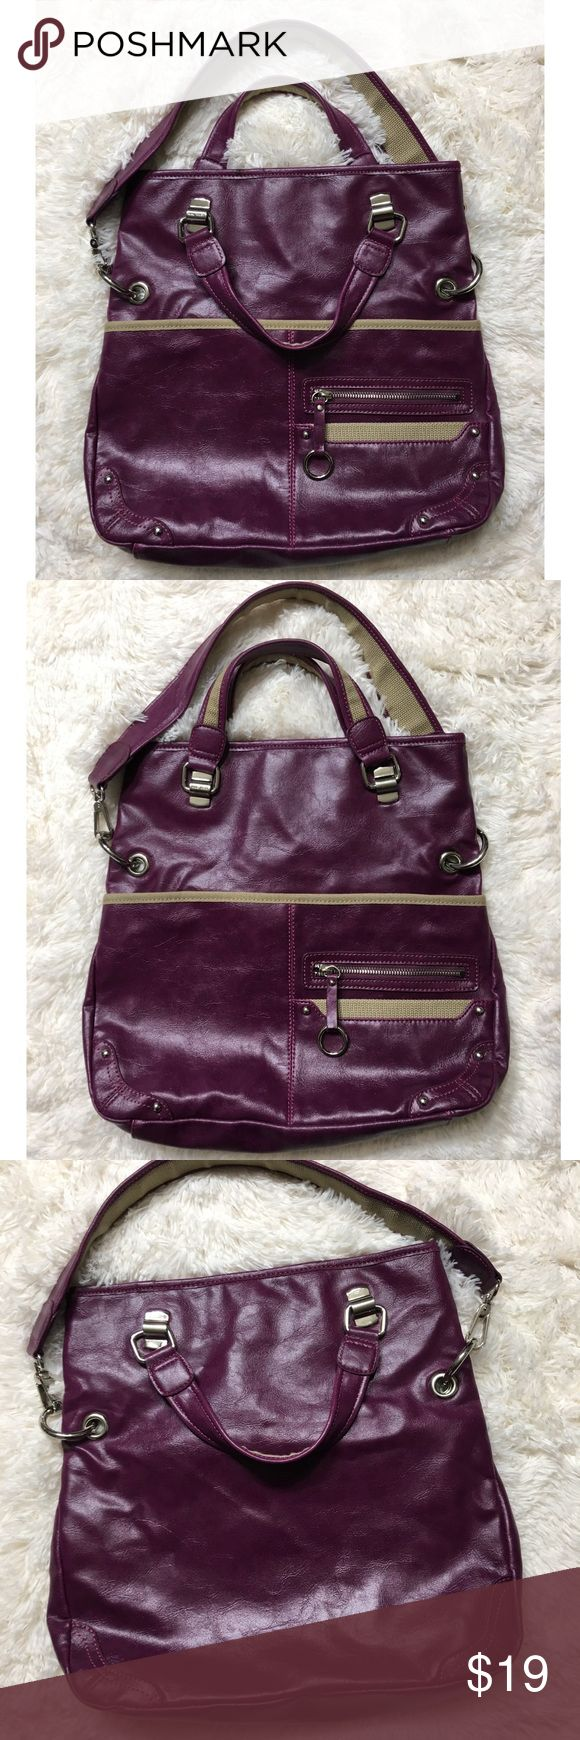 Nine West Purple Shoulder Bag Bag Length: 14 inches Height: 13 inches Width: 4 inches Nine West Bags Shoulder Bags